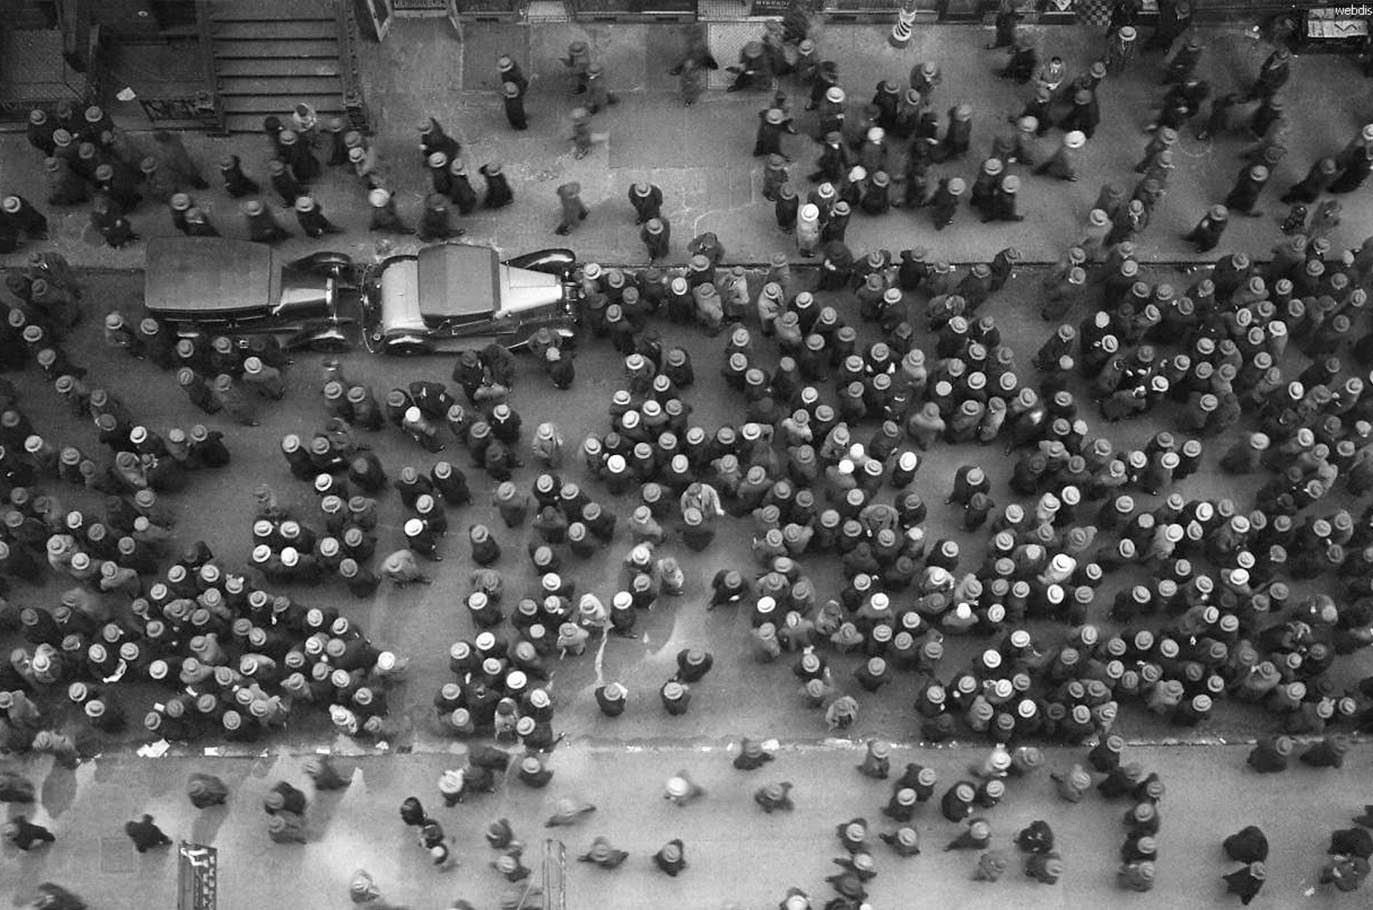 36th-street-garment-district-new-yorkby-margaret-bourke-white-1930